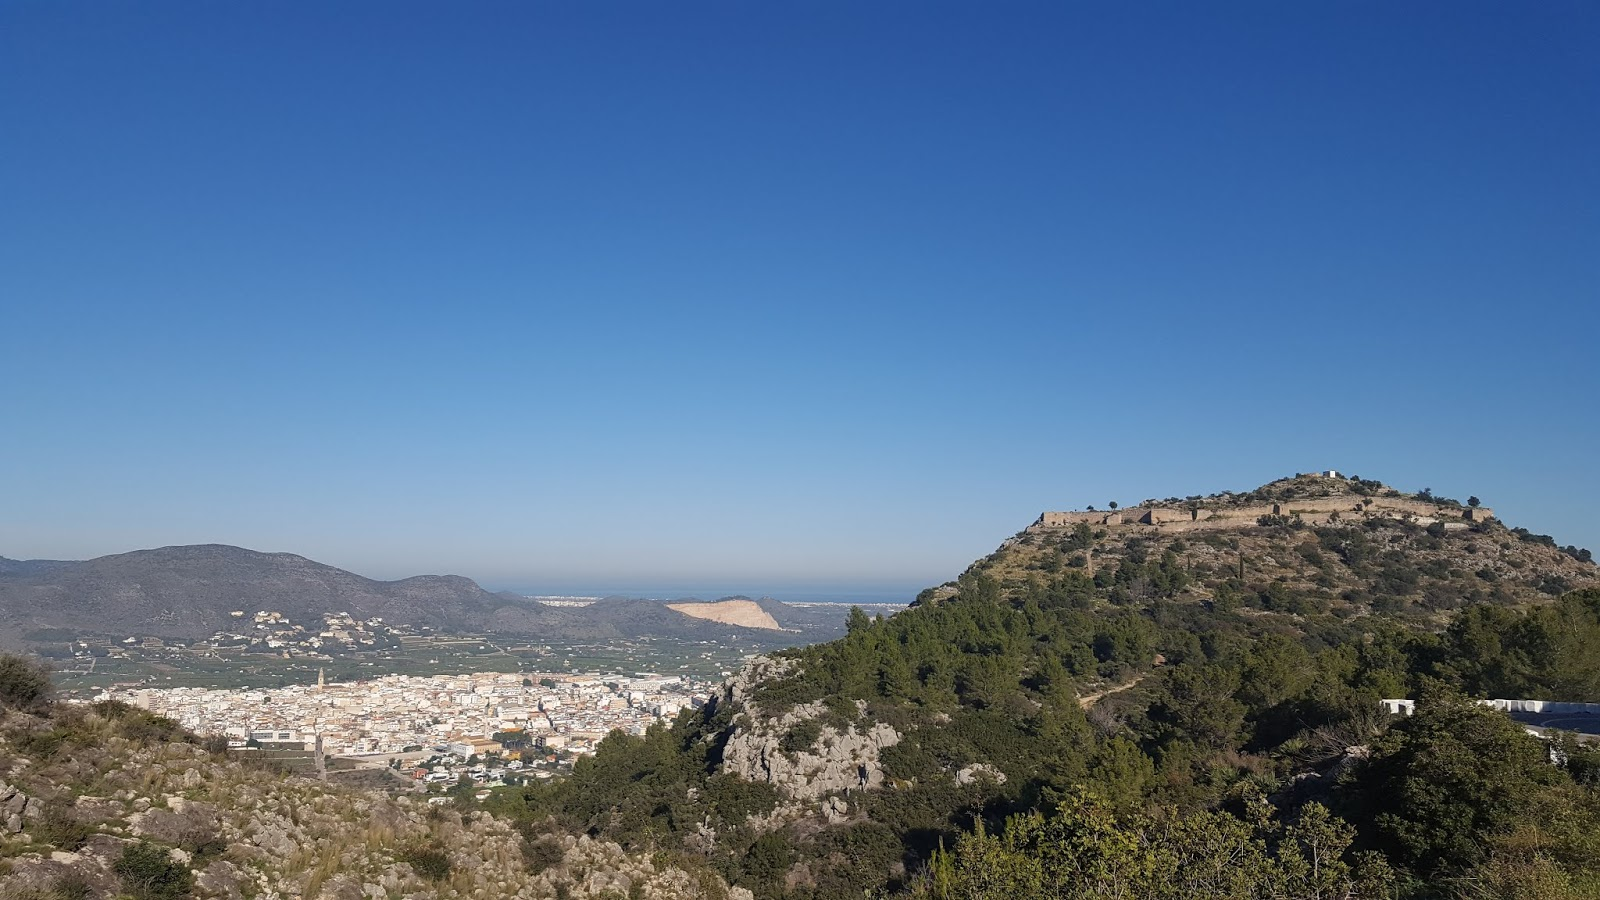 Cycling in Spain, Pego, Province of Alicante